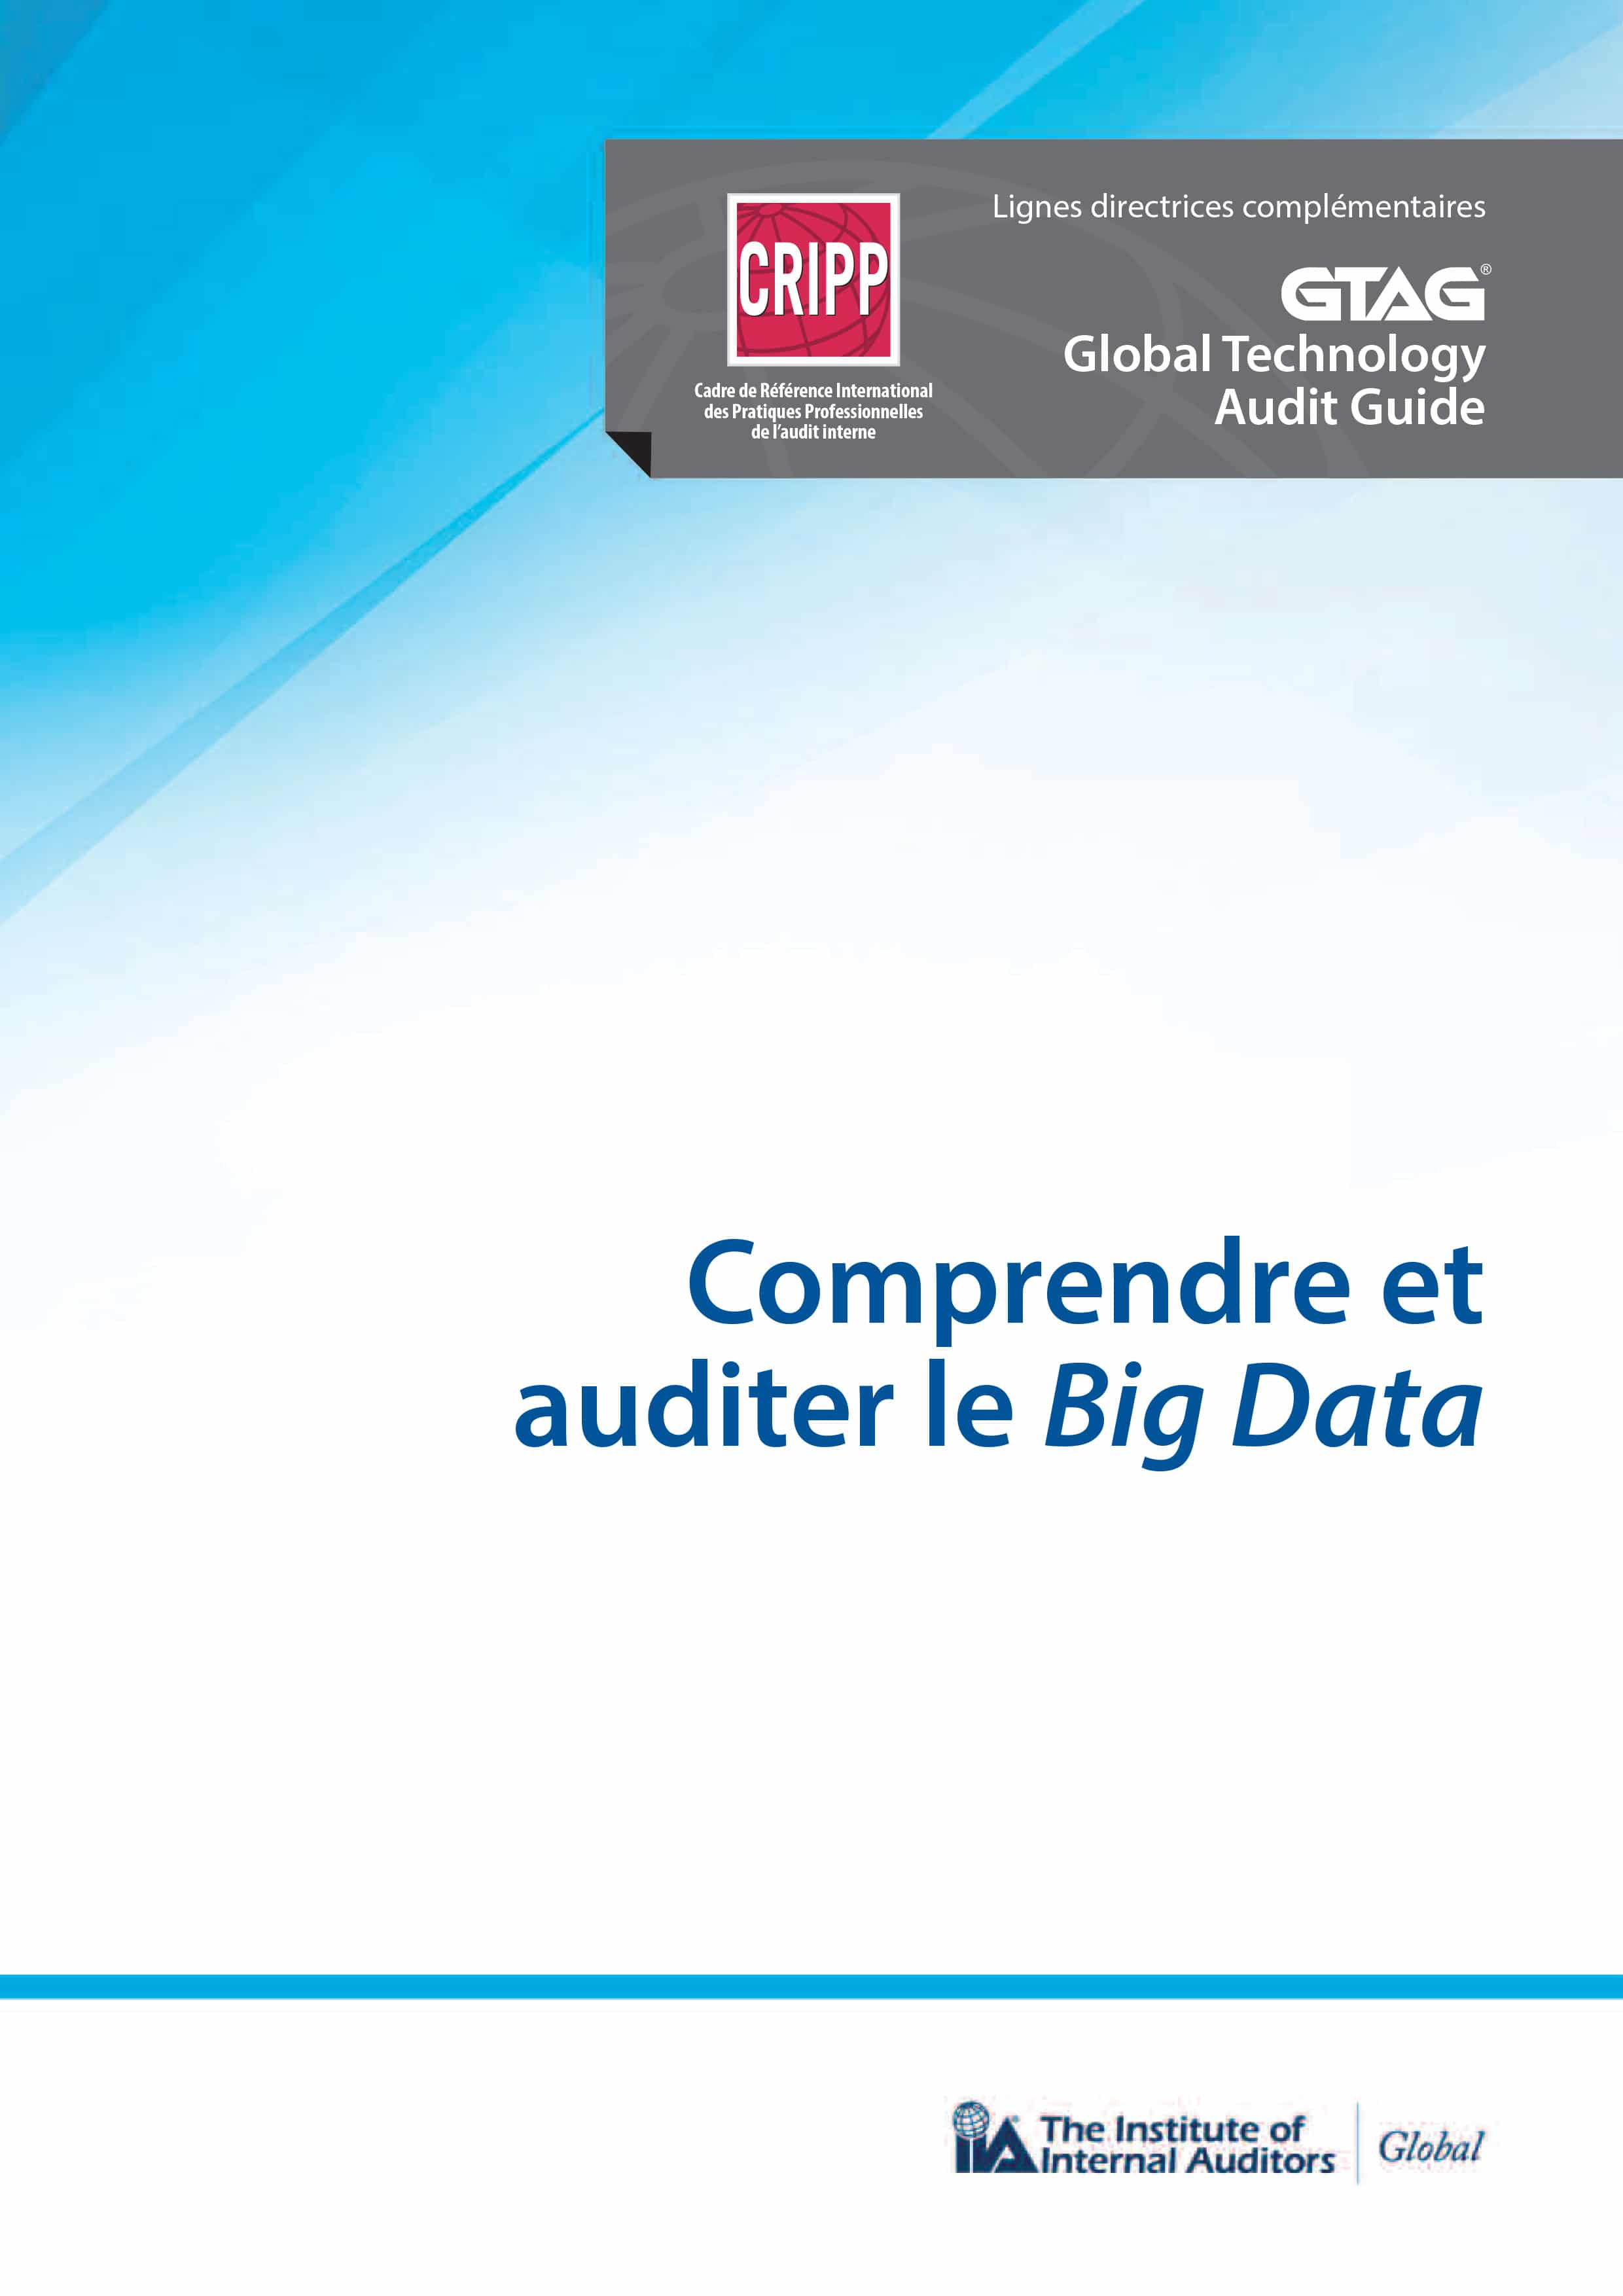 GTAG : Comprendre et auditer le Big data